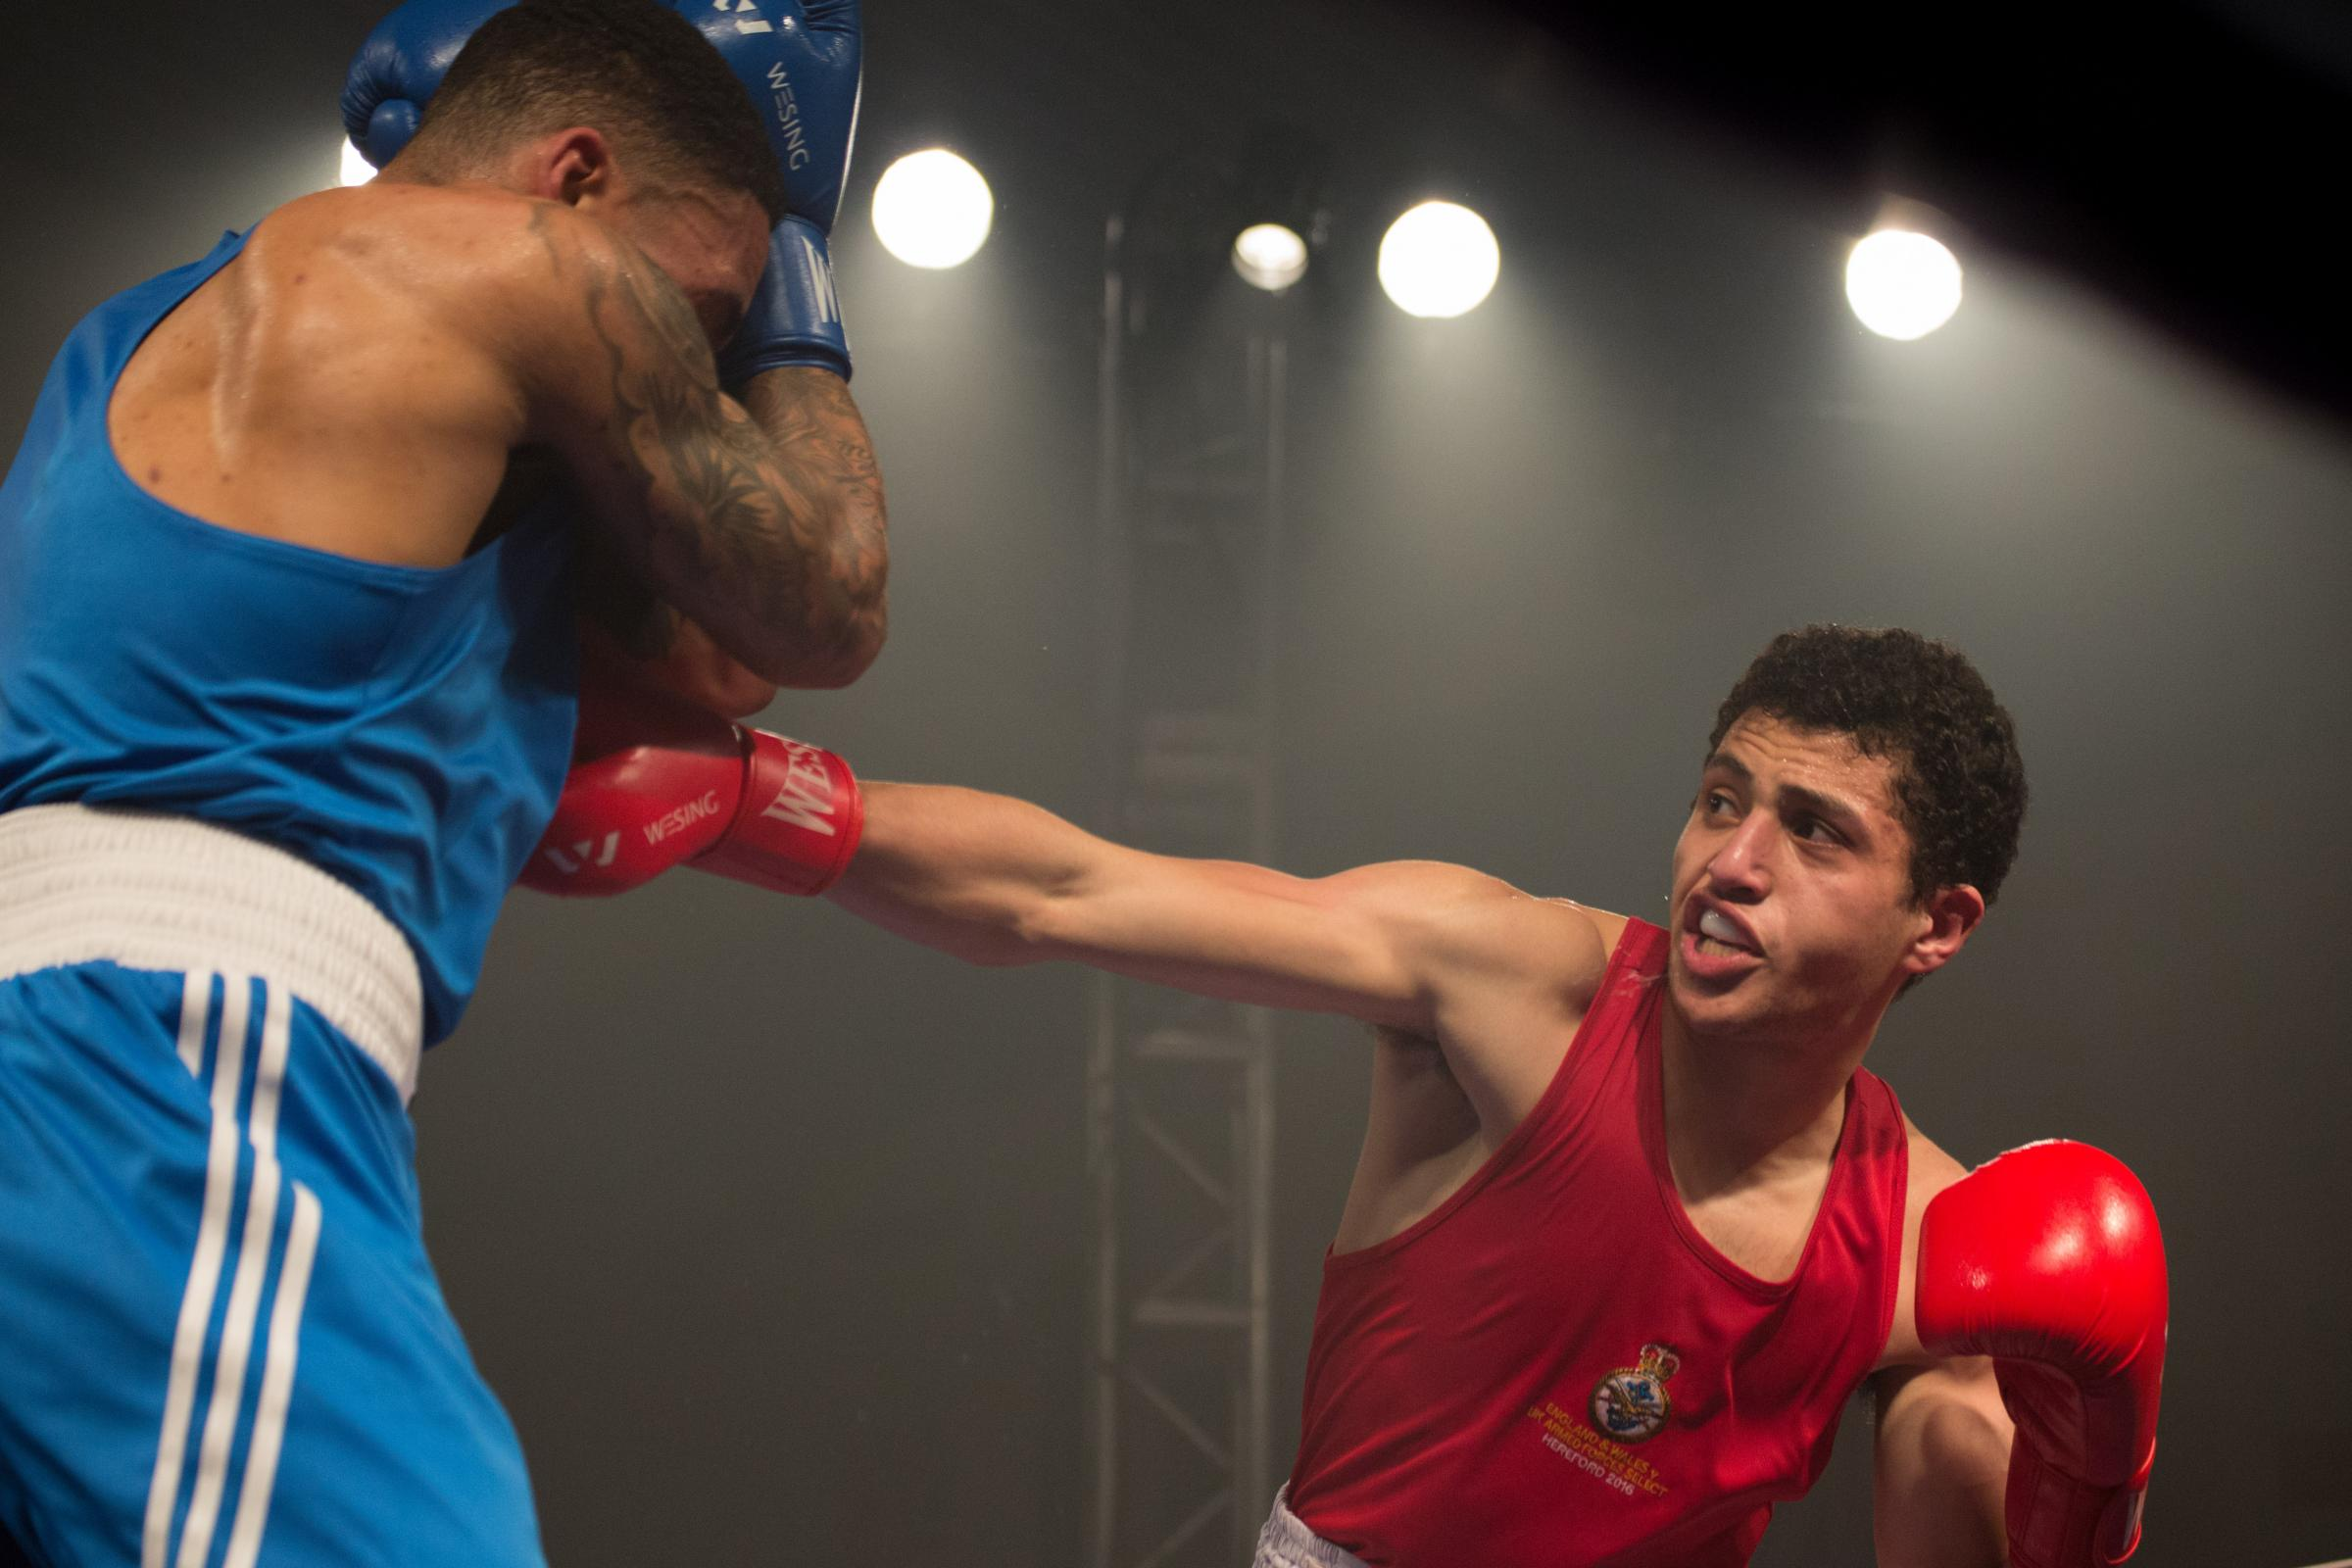 Yusuf Abdallah fighting at last year's show